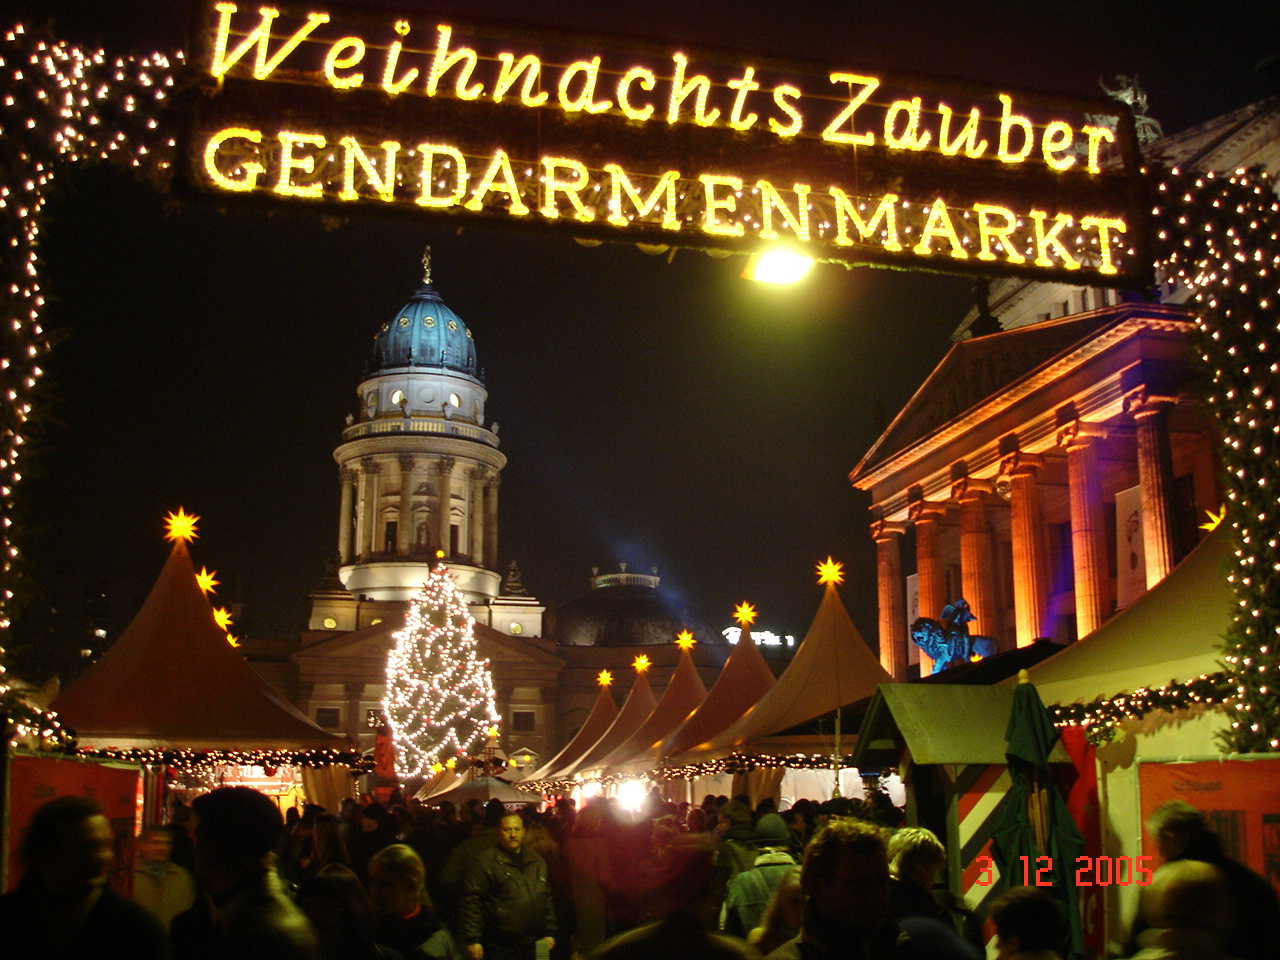 weihnachtsmarkt berlin gendarmenmarkt foto bild deutschland europe berlin bilder auf. Black Bedroom Furniture Sets. Home Design Ideas